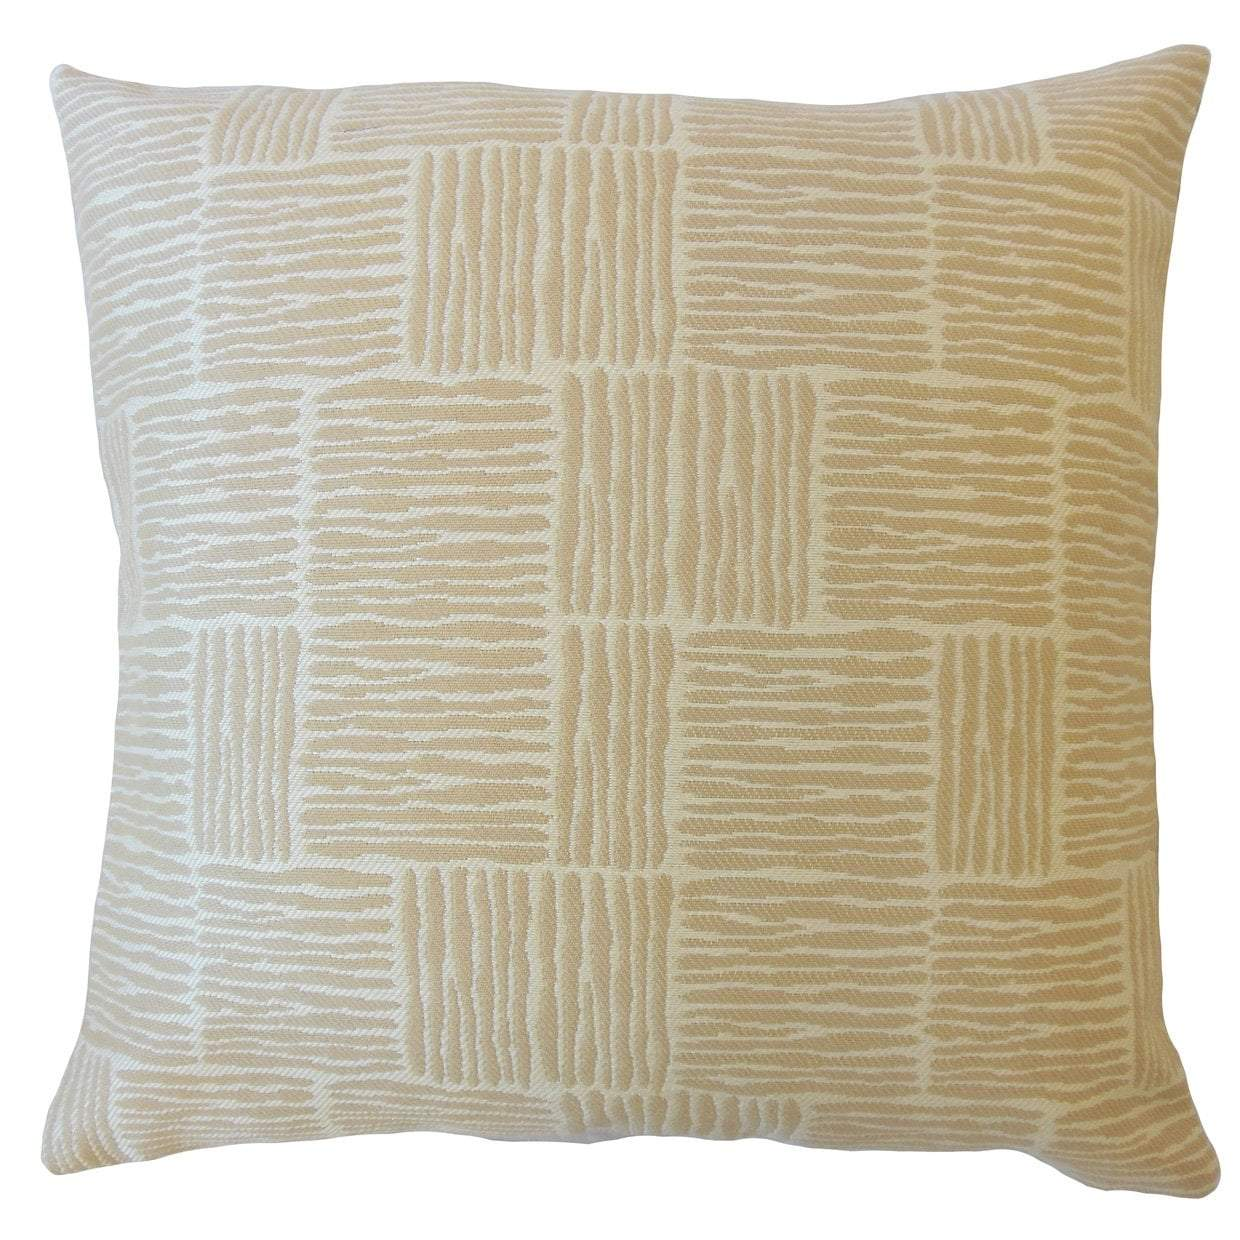 Cline Throw Pillow Cover